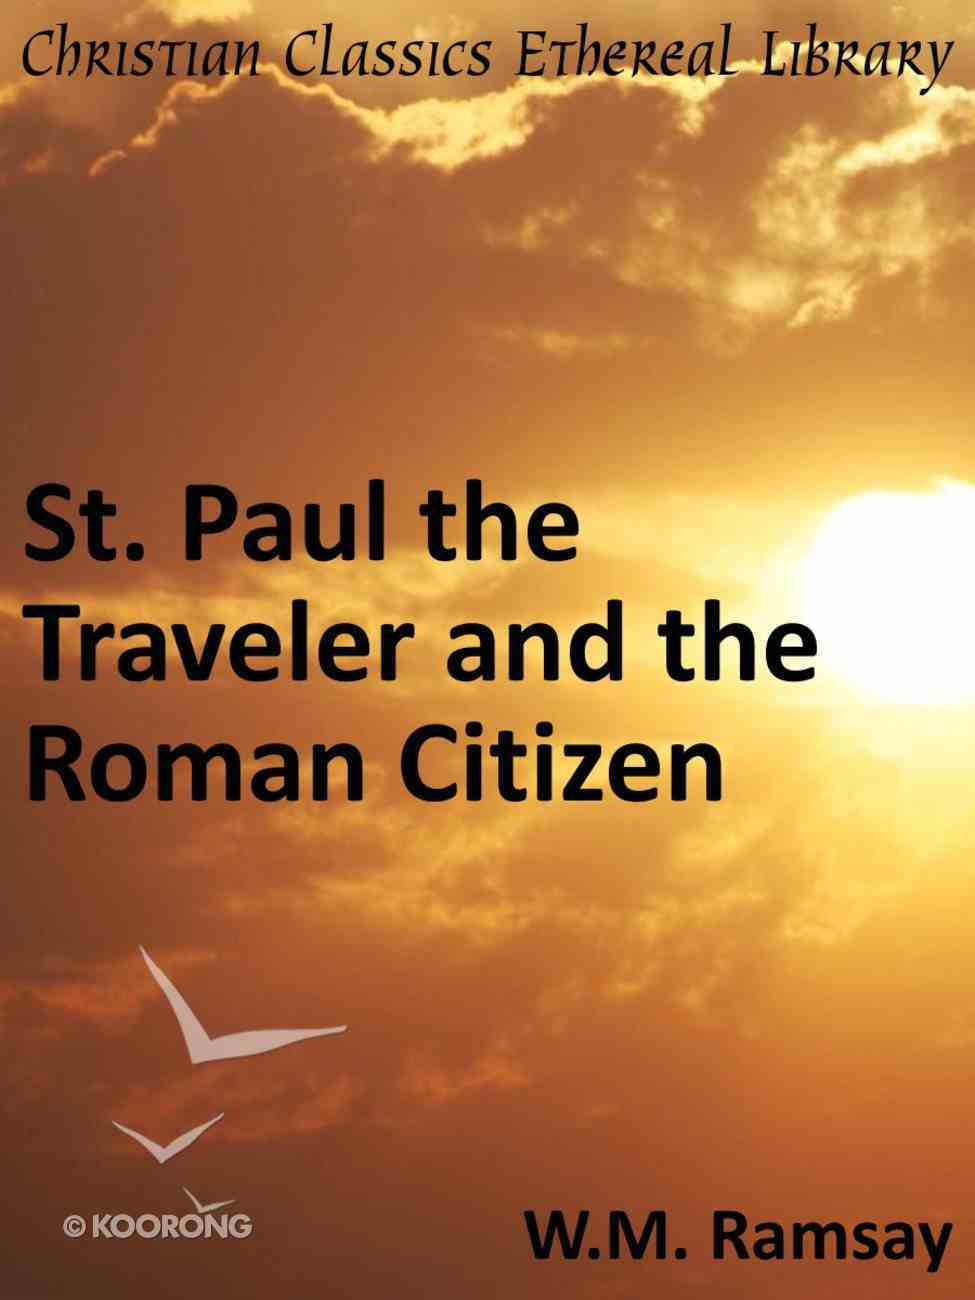 St. Paul the Traveler and the Roman Citizen eBook